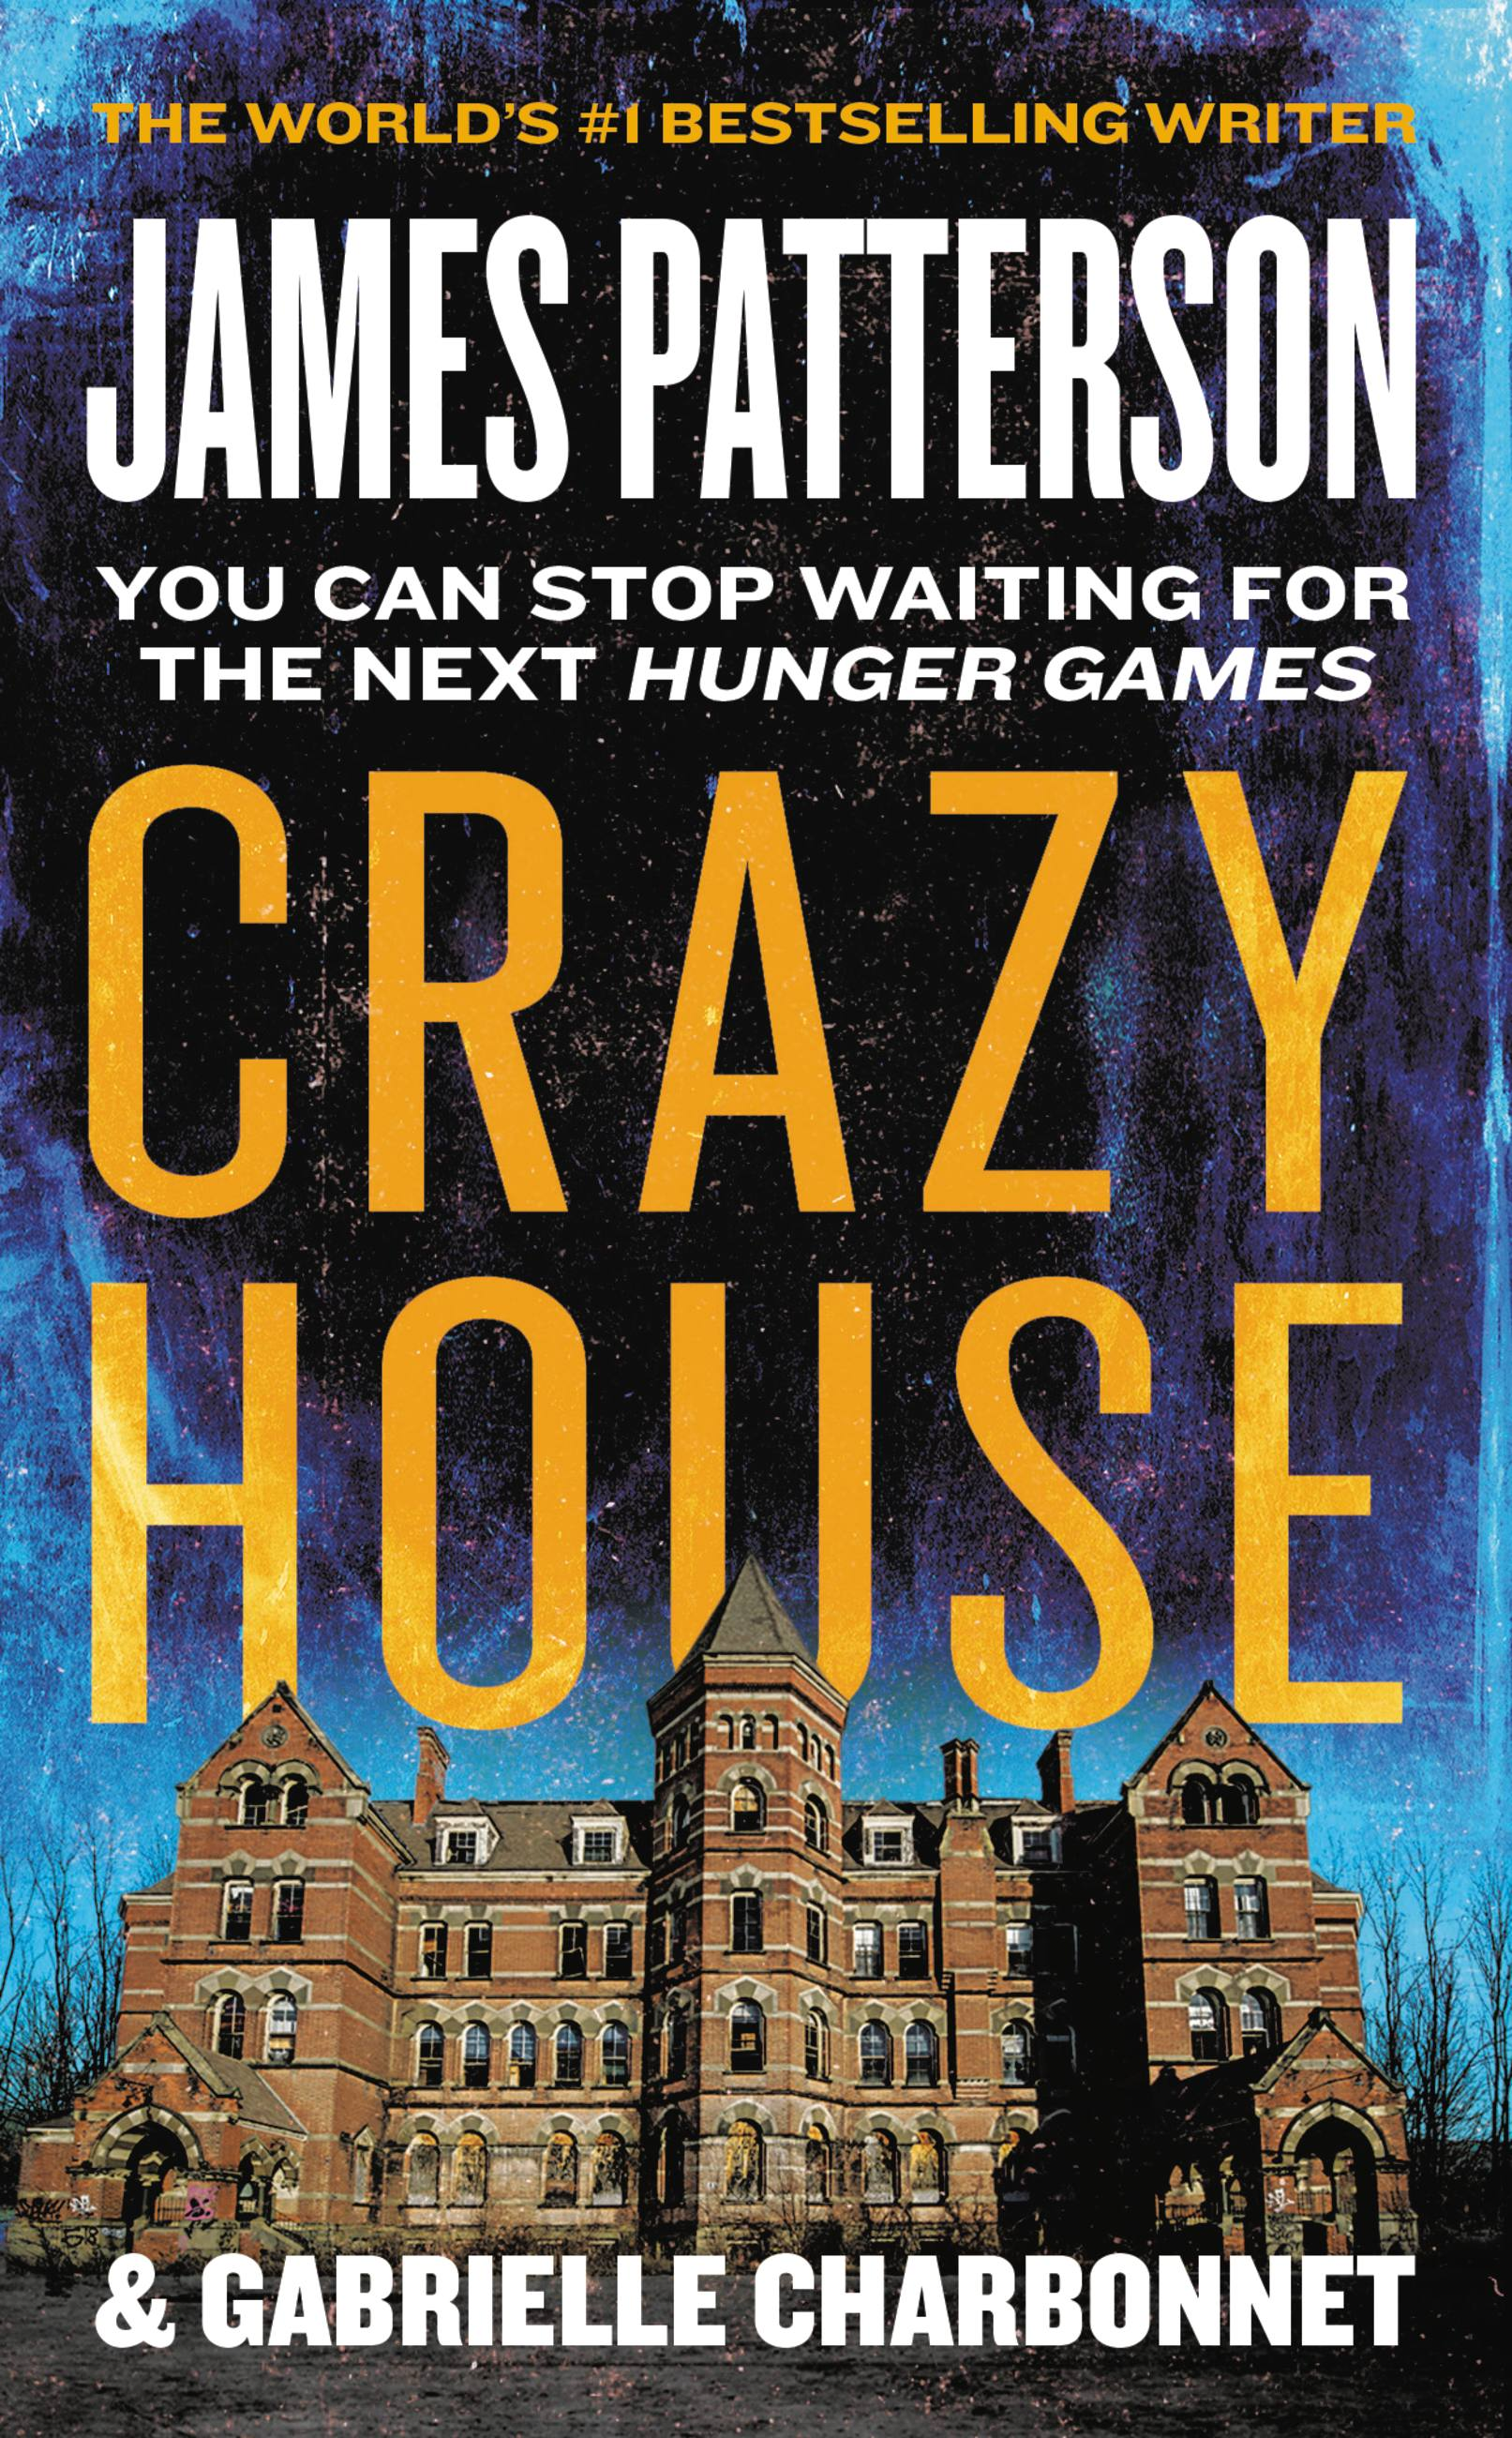 Crazy house [eBook]